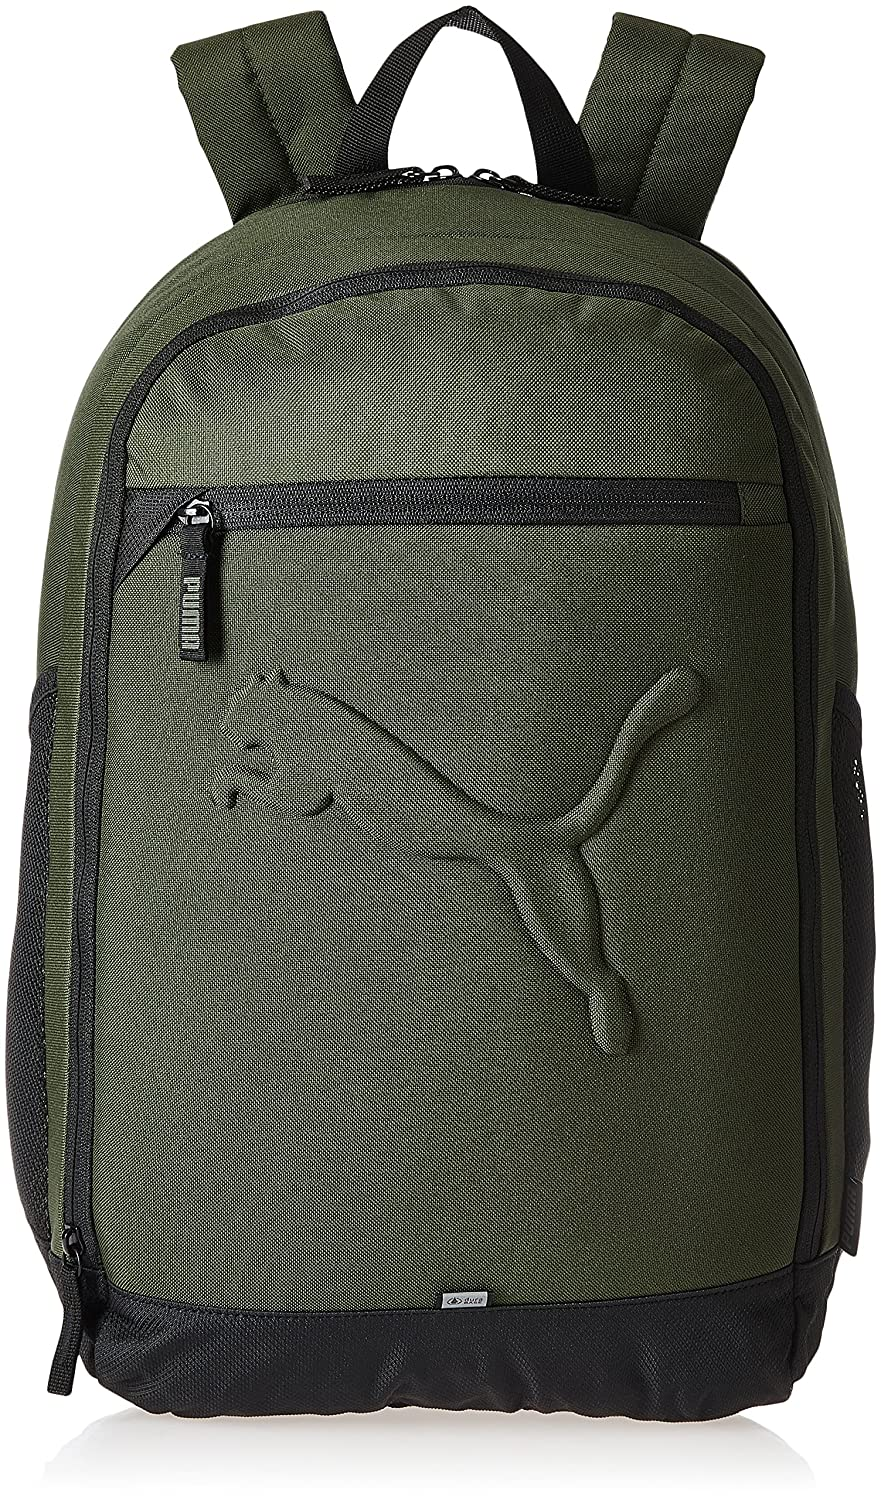 d642da431b38 ... PUMA Buzz Backpack Olive Night Amazon.co.uk Shoes Bags low priced c5889  93e87 ...